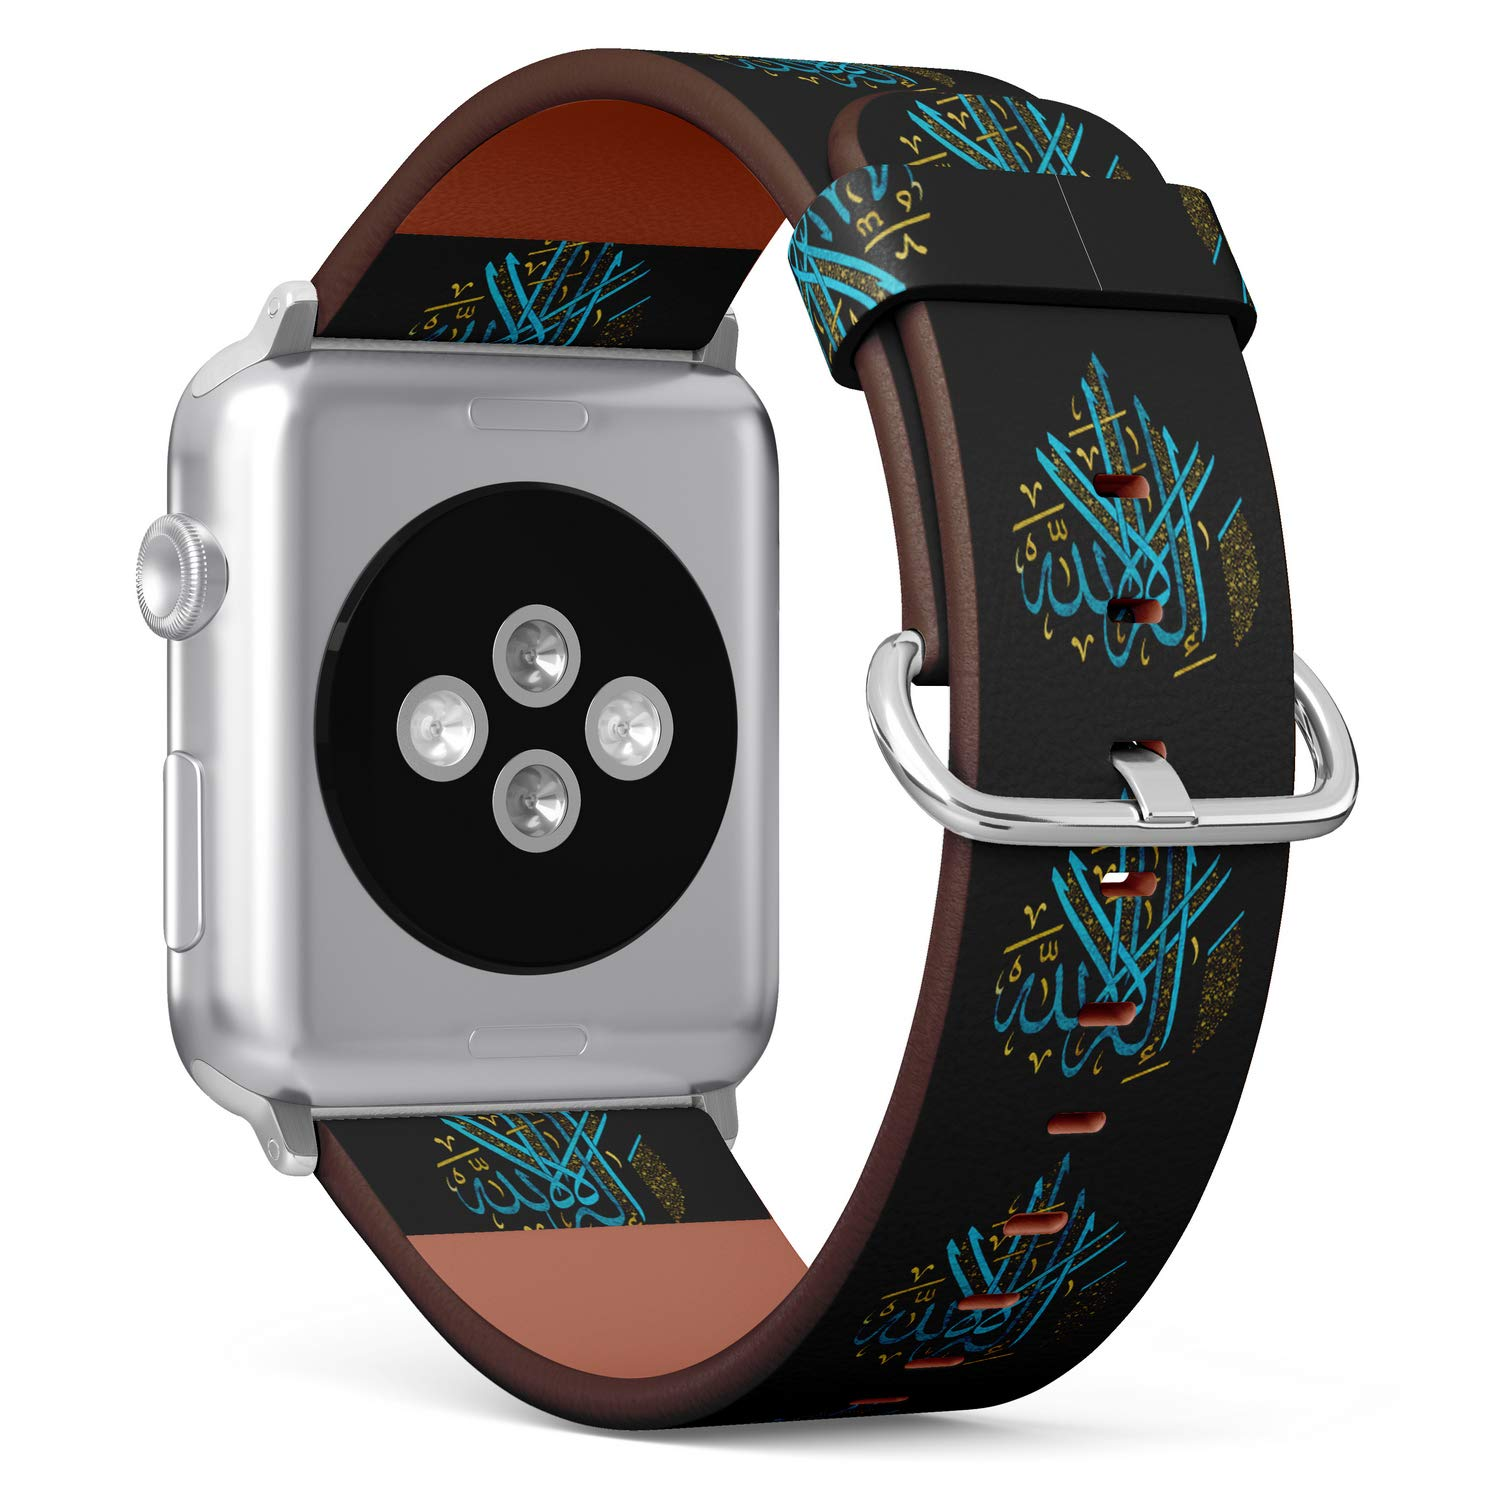 Amazon.com: S-Type iWatch Leather Strap Printing Replacement ...